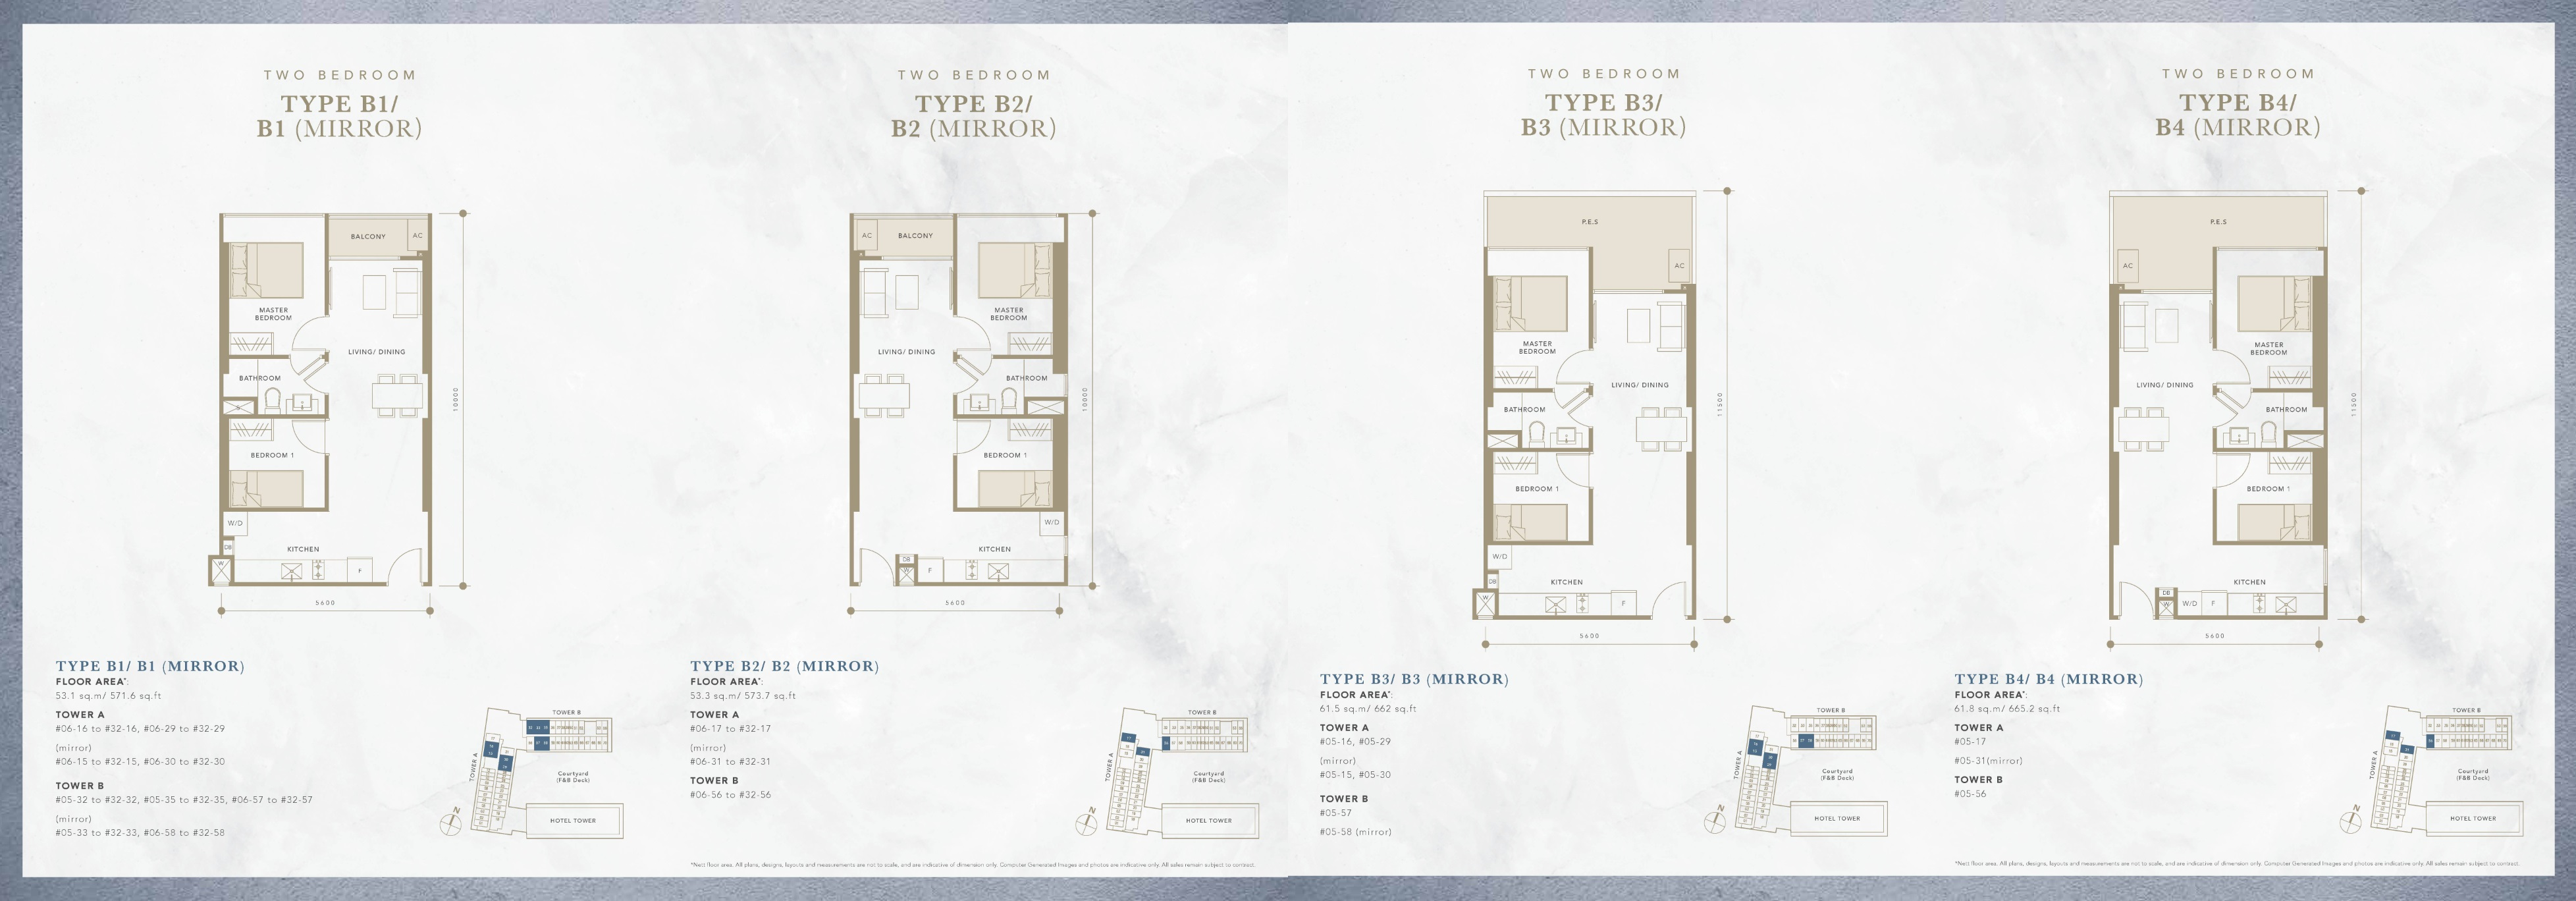 Oxley Convention City Residential 2 Bedroom